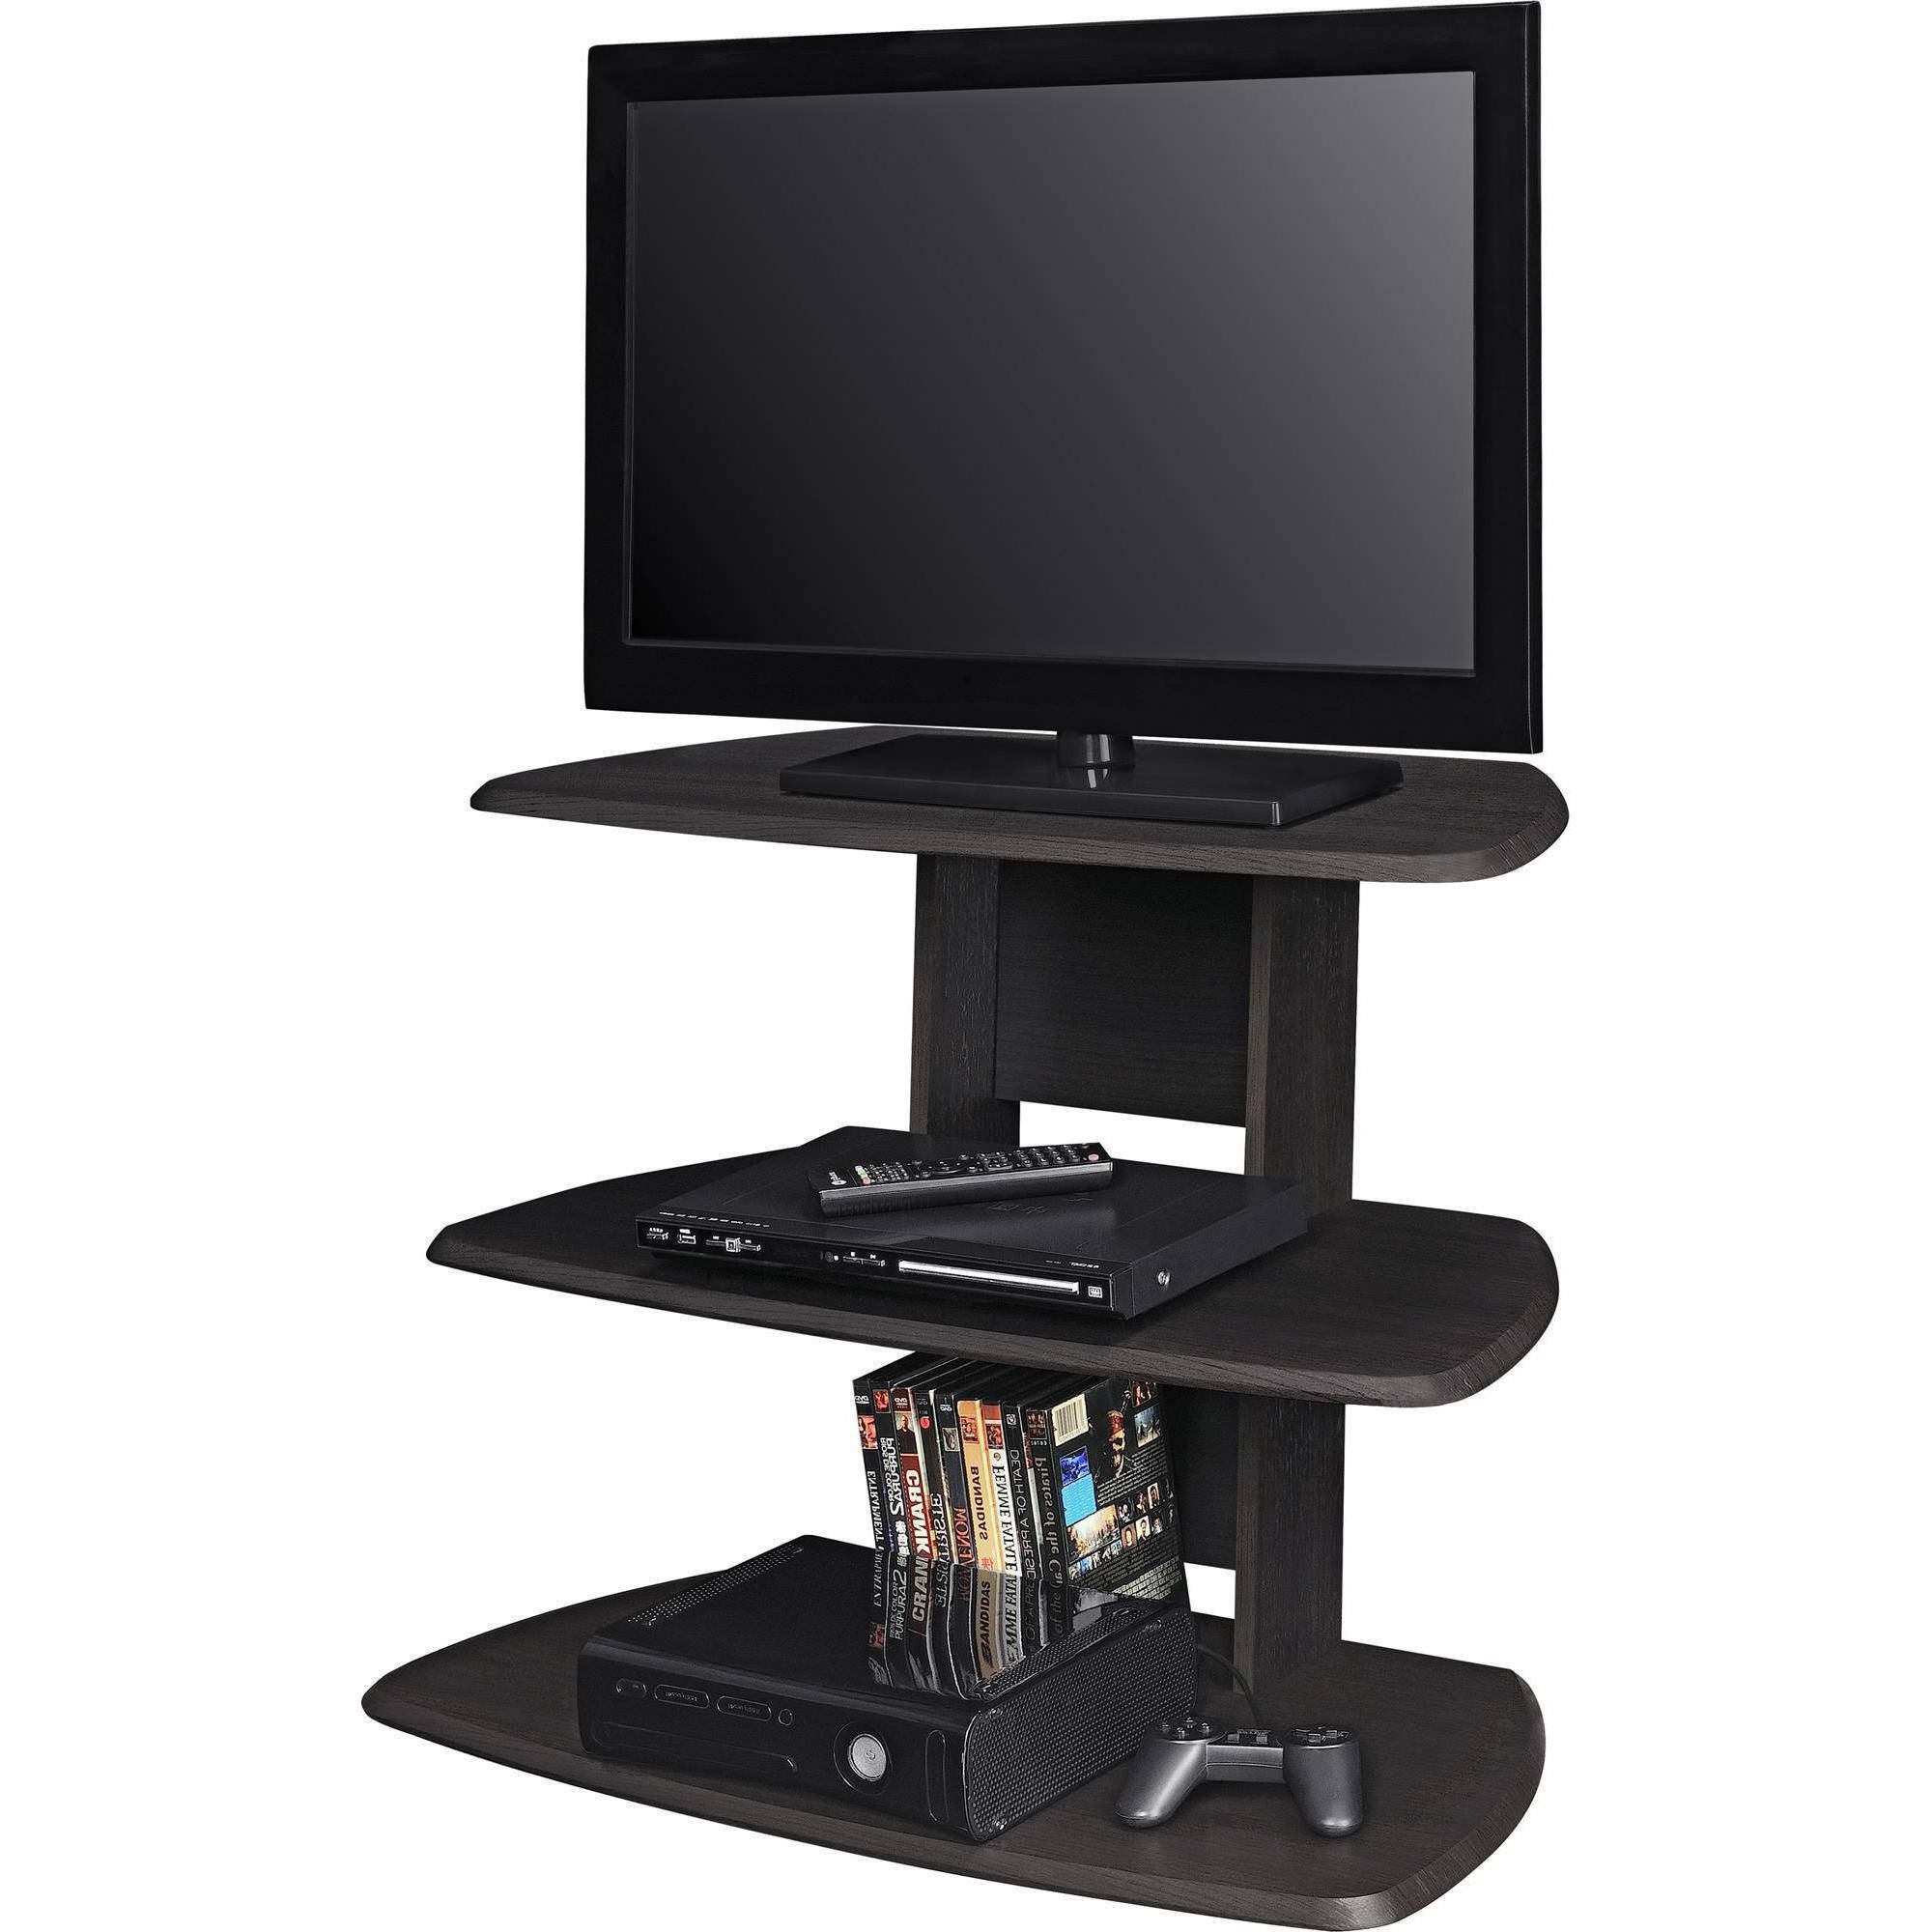 "2017 32 Inch Tv Stands Intended For Ameriwood Home Galaxy Ii Tv Stand For Tvs Up To 32"" Wide, Espresso (View 1 of 20)"